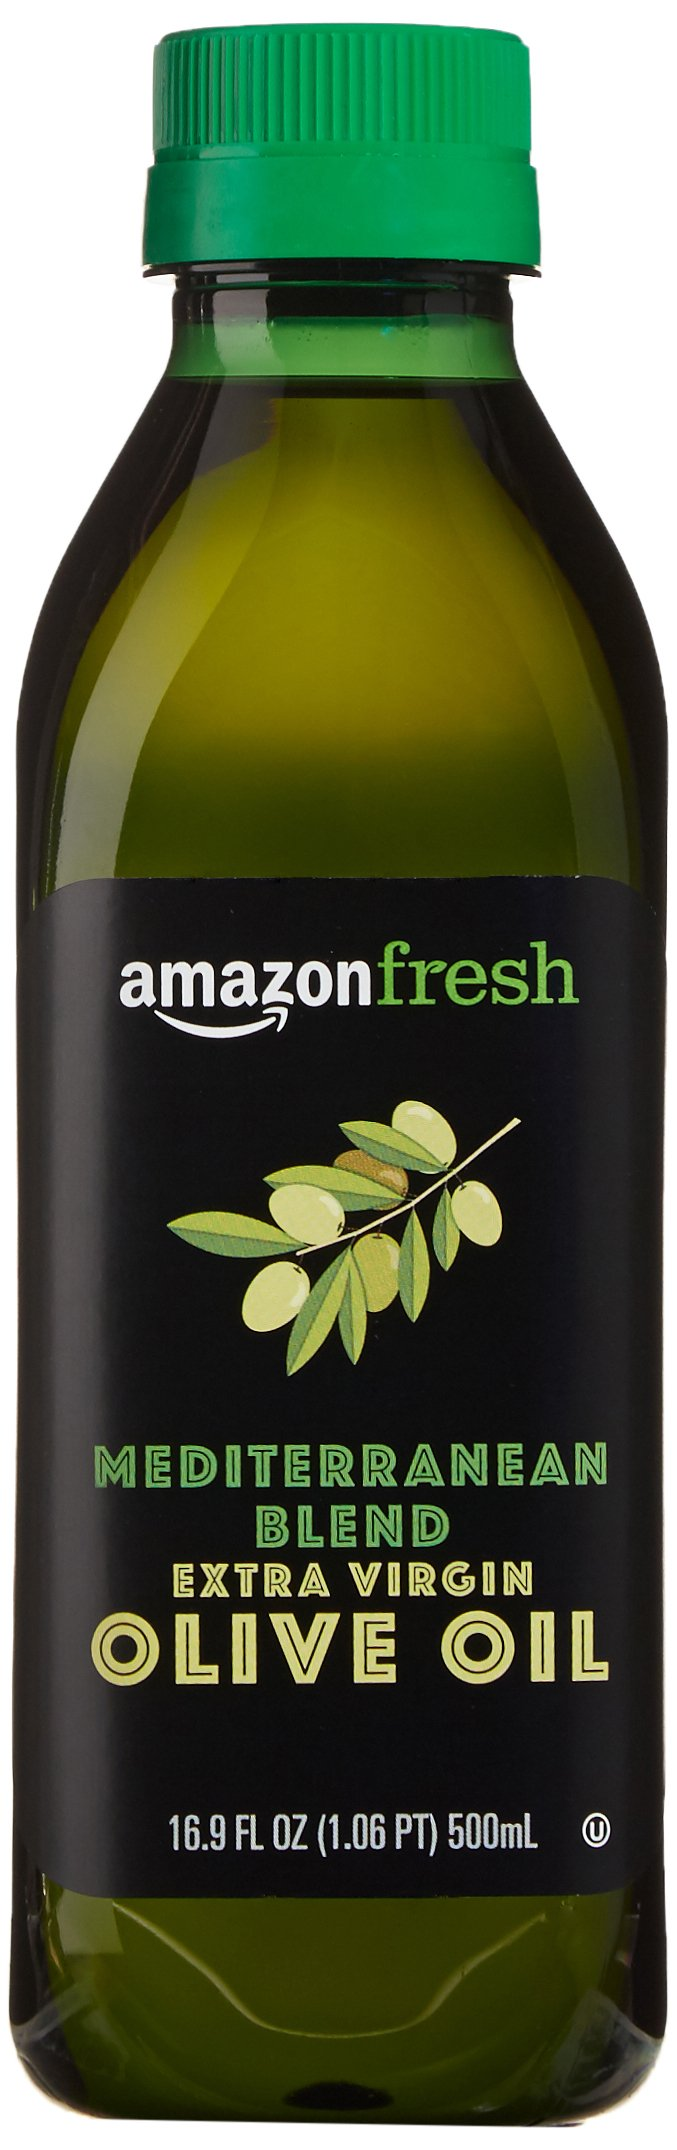 AmazonFresh Mediterranean Extra Virgin Olive Oil, 16.9 fl oz (500mL) 1 Buttery, mild flavor Product of Greece, Italy and Spain Sourced from growers in the Mediterranean region; bottled in Italy